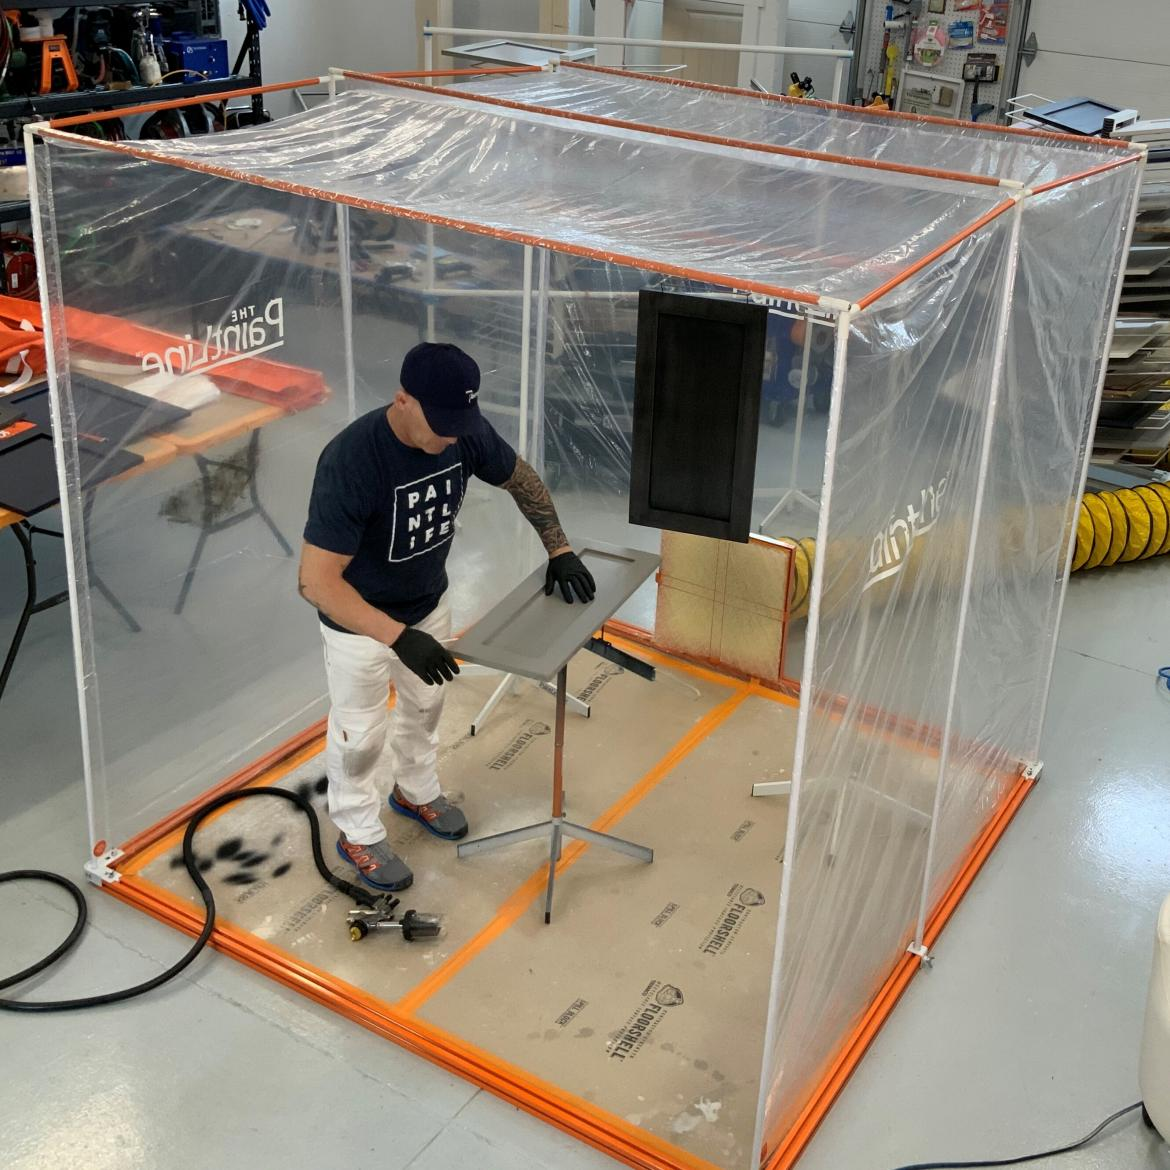 Portable spray paint booth professional